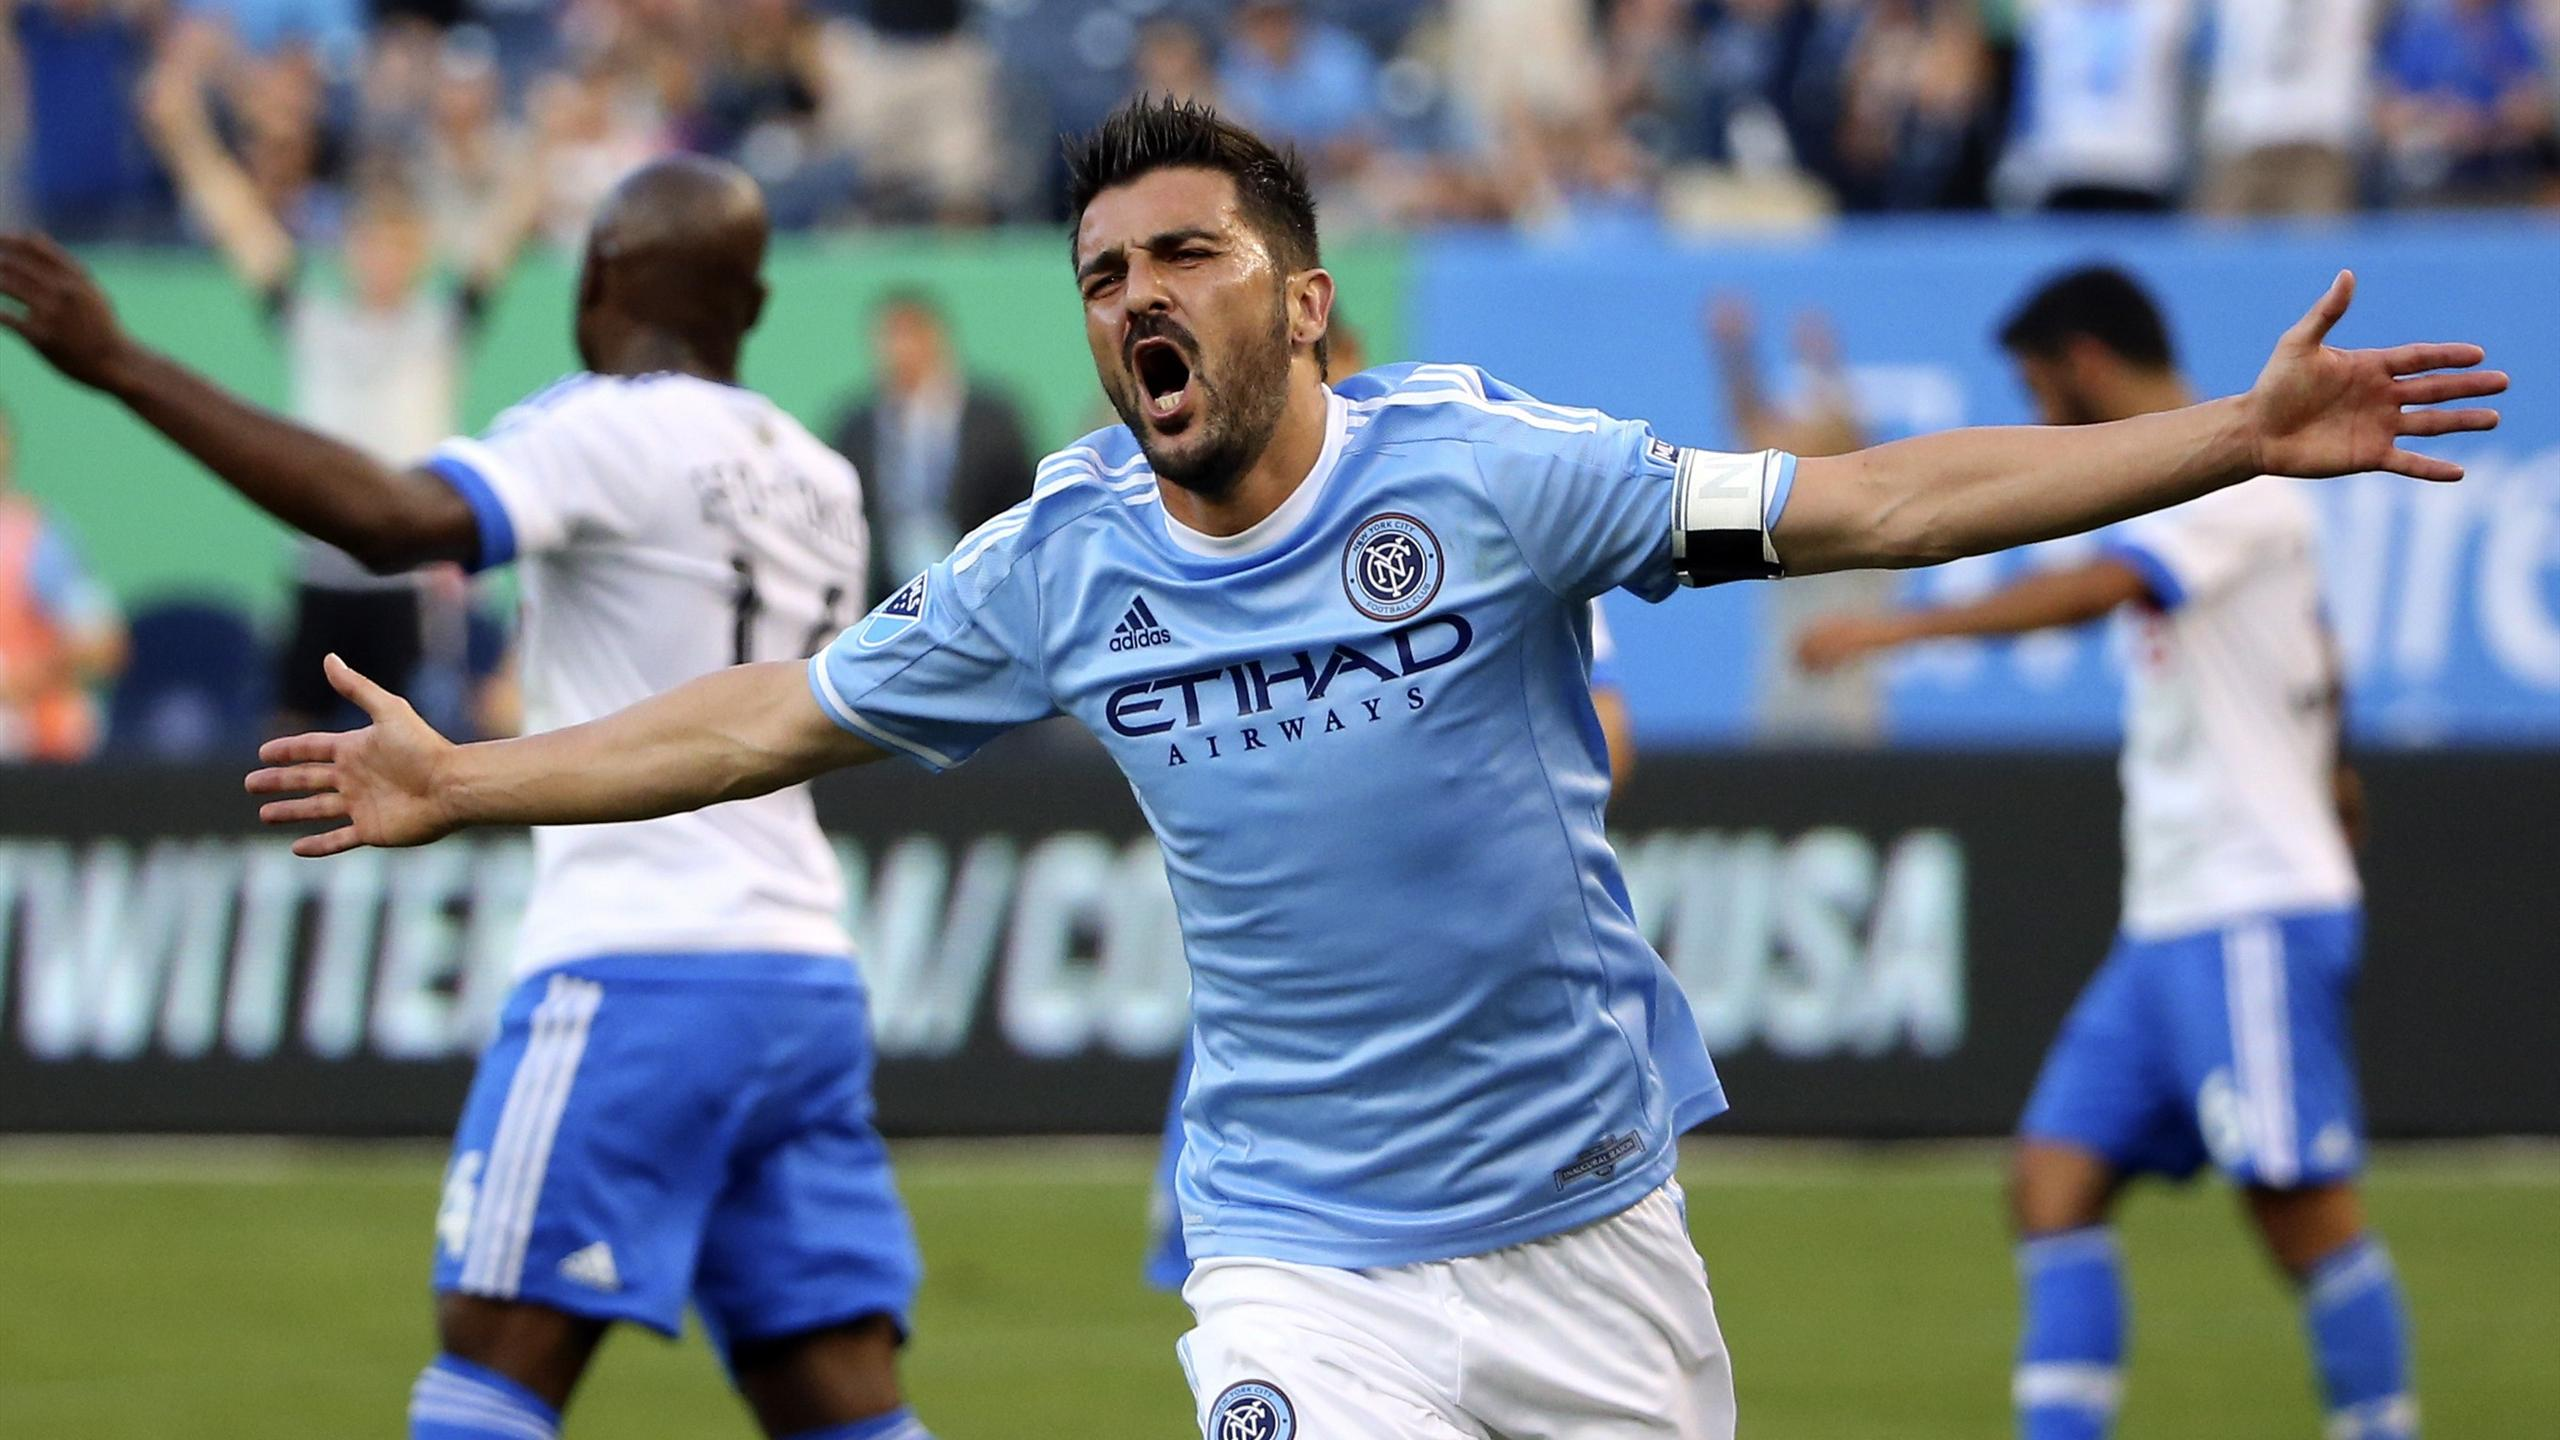 New York City FC forward David Villa (7) celebrates his goal during the first half against the Montreal Impact at Yankee Stadium